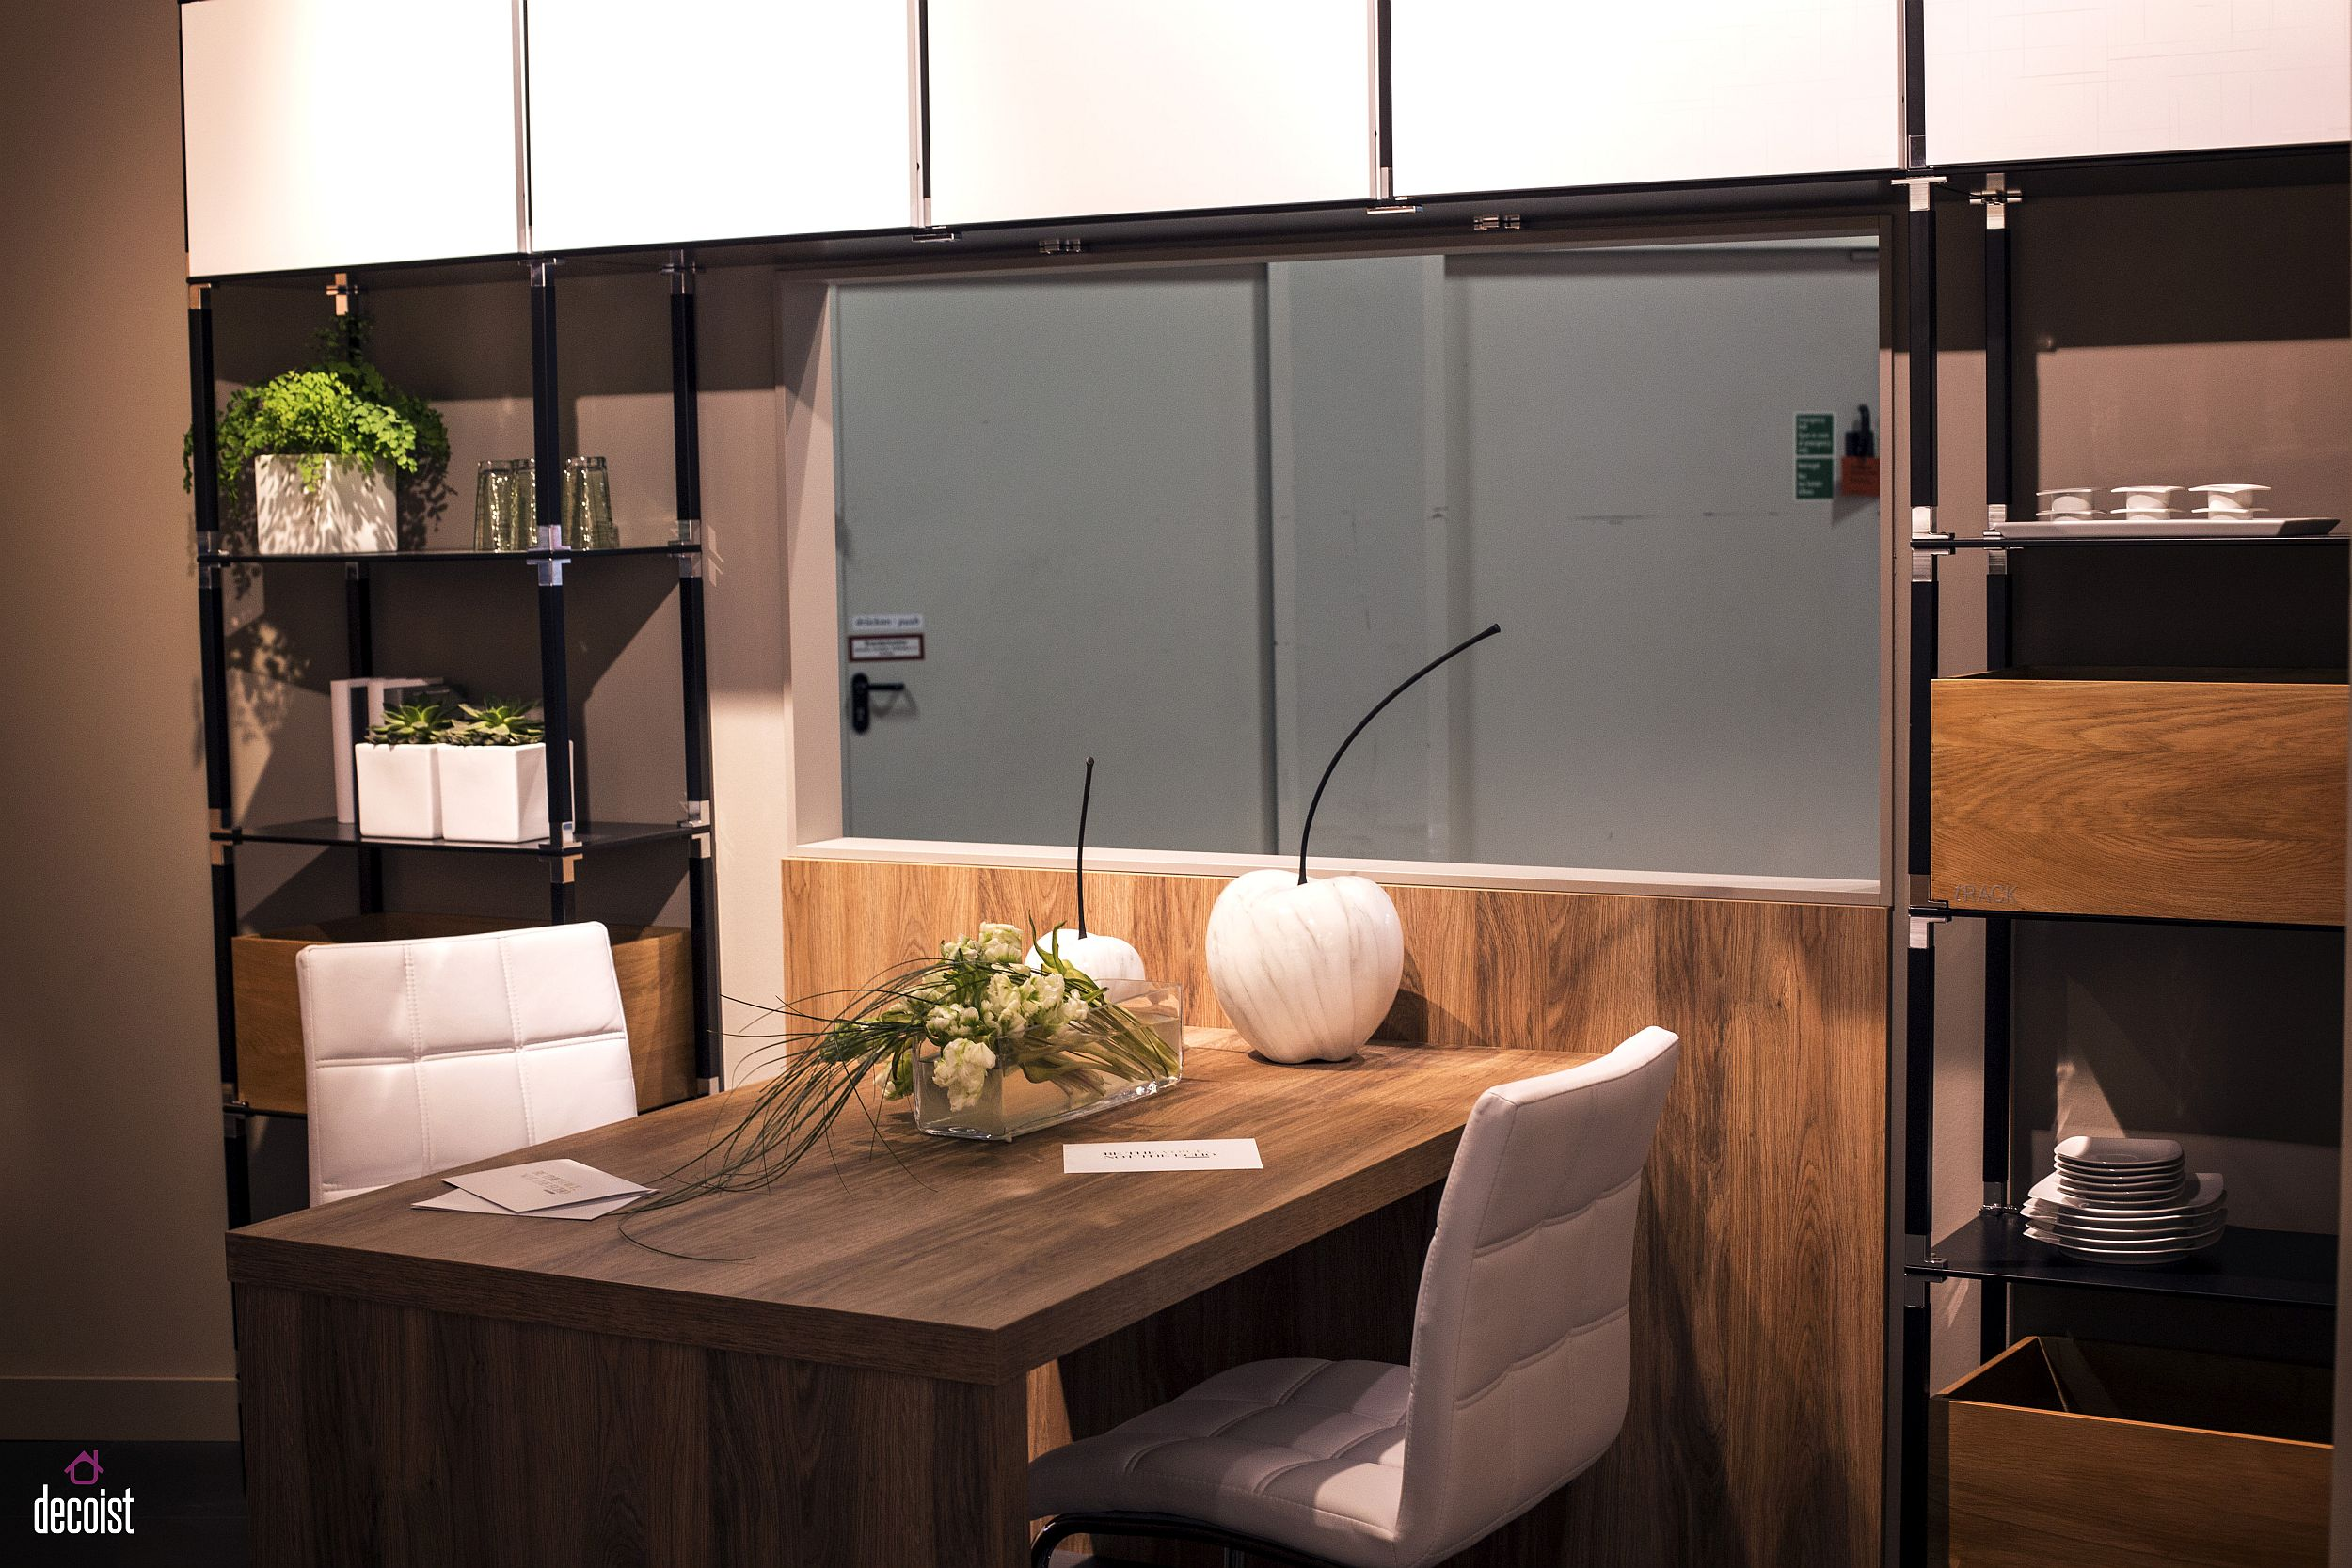 Turn a nifty corner in the kitchen into home workspace with a space-savvy wooden desk